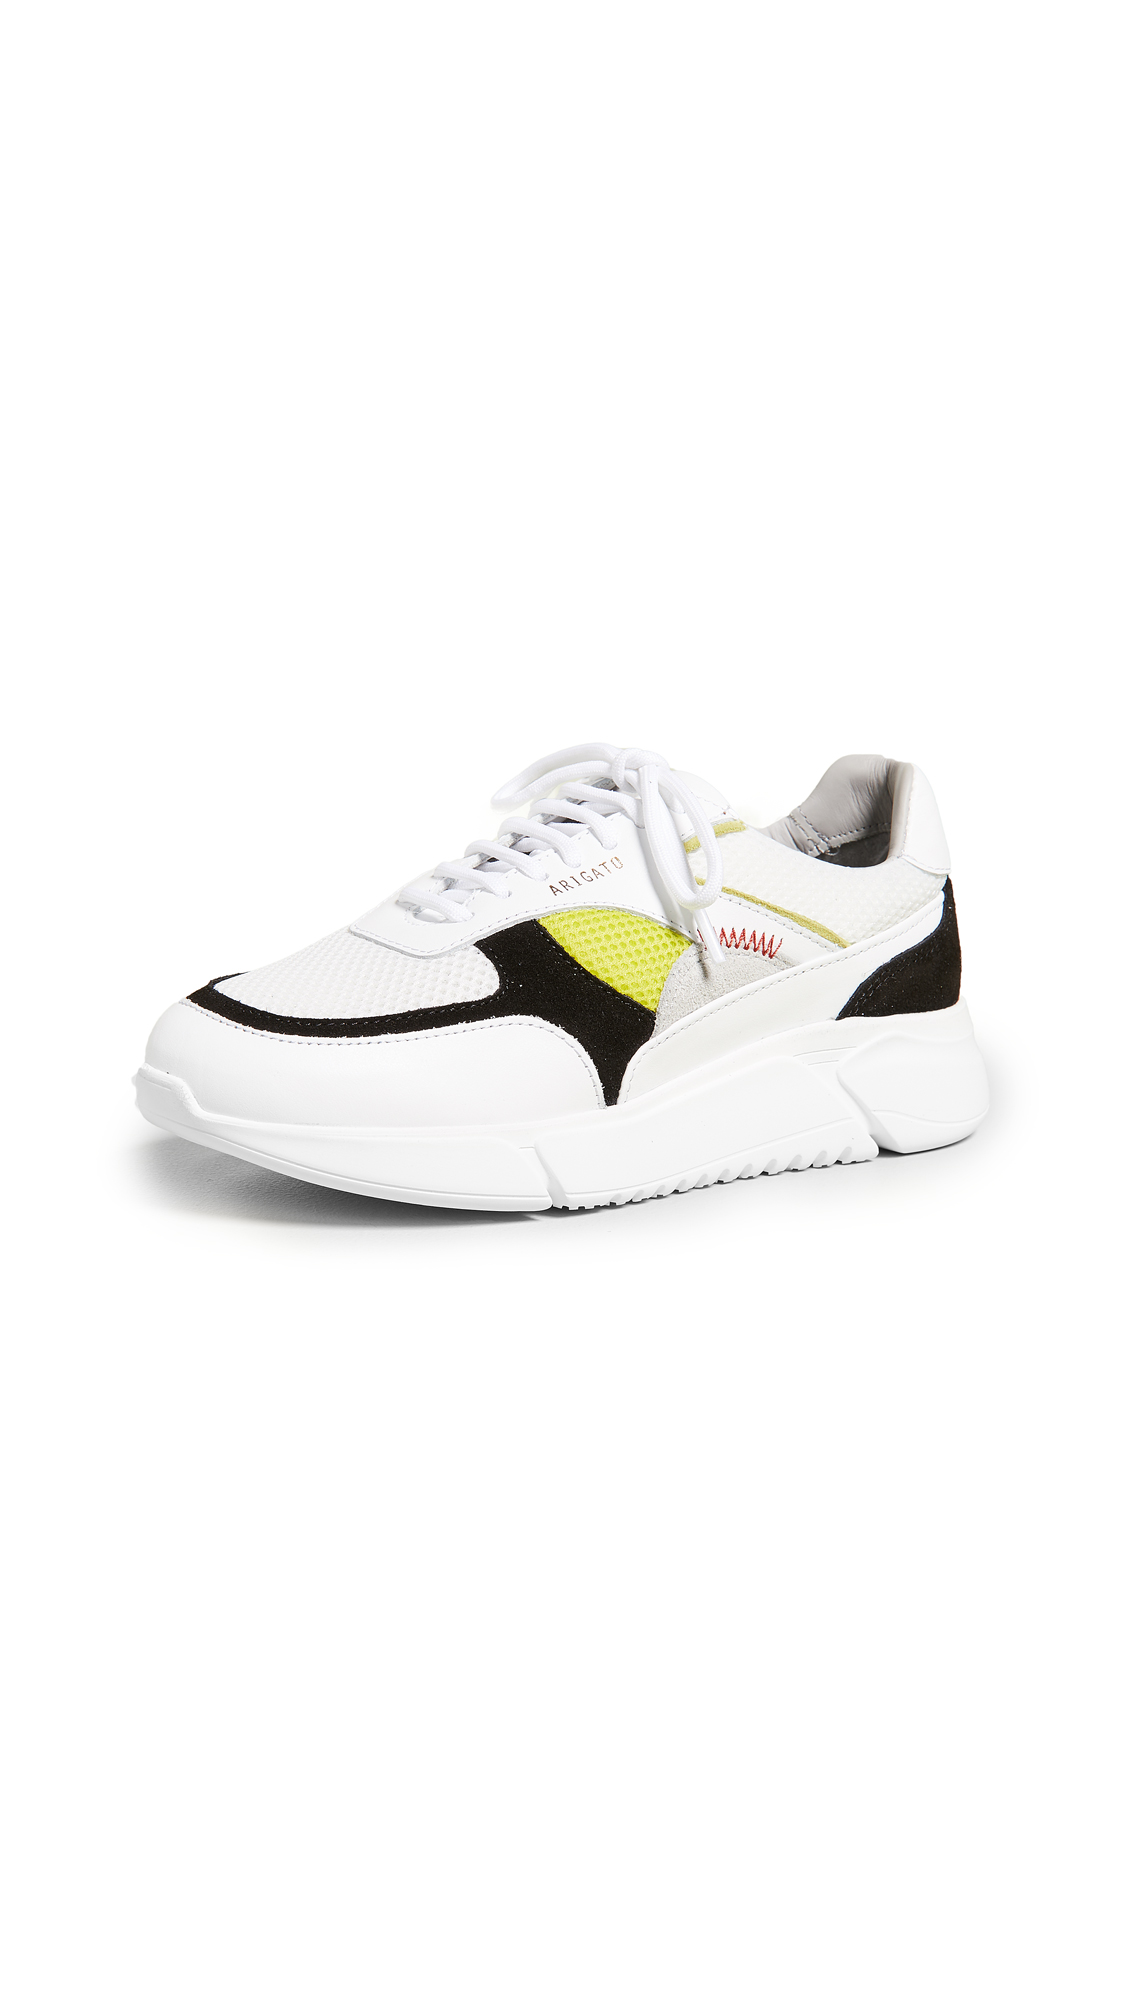 Axel Arigato Genesis Sneakers - White/Black/Yellow